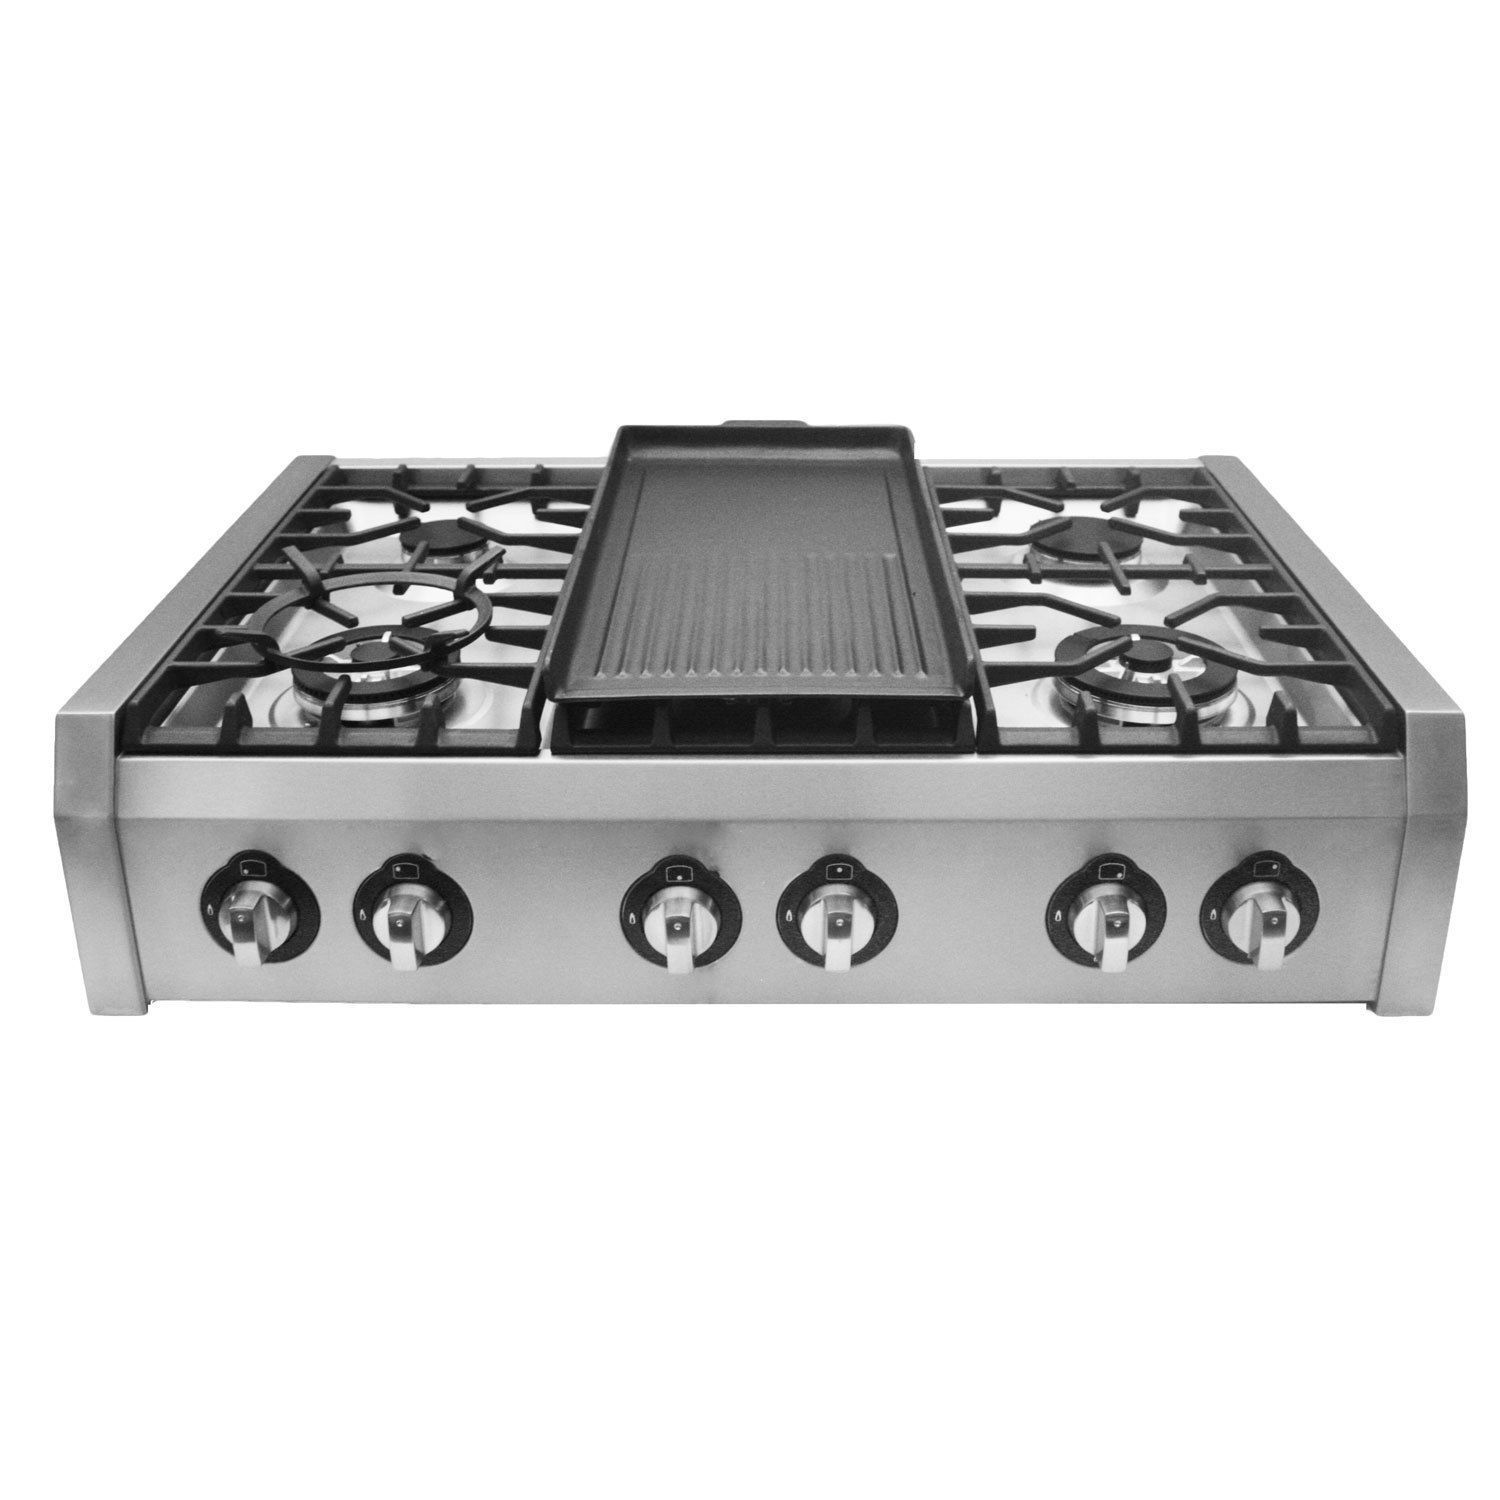 Cosmo s96 36 in prostyle gas rangetop with 6 burners